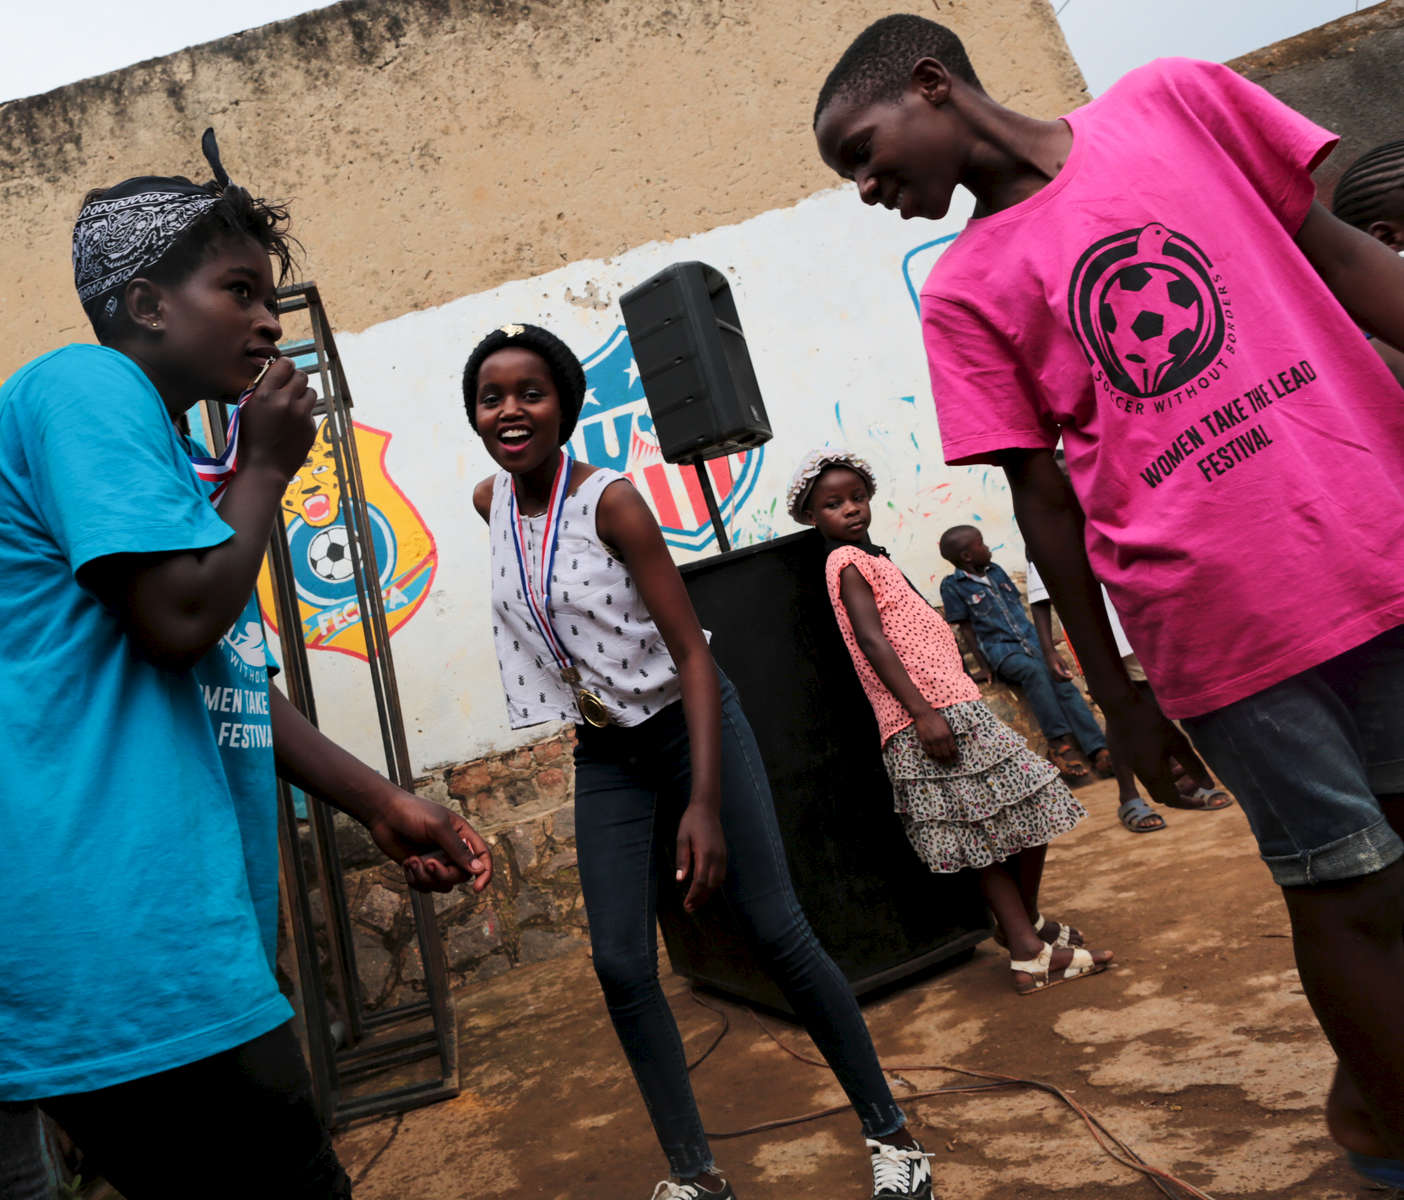 Congolese refugees Ritha (left) and her friend Grace (center) celebrate their medals while their friend Joseph (right) looks up at the end of an award ceremony in Kampala, Uganda on December 18, 2018. Although Uganda is welcoming and host one of the largest population of refugees in the world, the life of refugees in Kampala, the capital, and the surrounding areas is very difficult, at best. Especially for youth, who have difficulties to access education because of financial reasons, and language barriers. In the slump of Nsambya, Soccer without Borders, an organization where most of the staff are also refugees, offer education and soccer training for these youths, helping them building strength and dealing with trauma. A special emphasis is given to empowering young women through that sport, when parents are often reluctant to let their girls play soccer. They fear they might become too masculine and would rather have their girls stay and help at home.